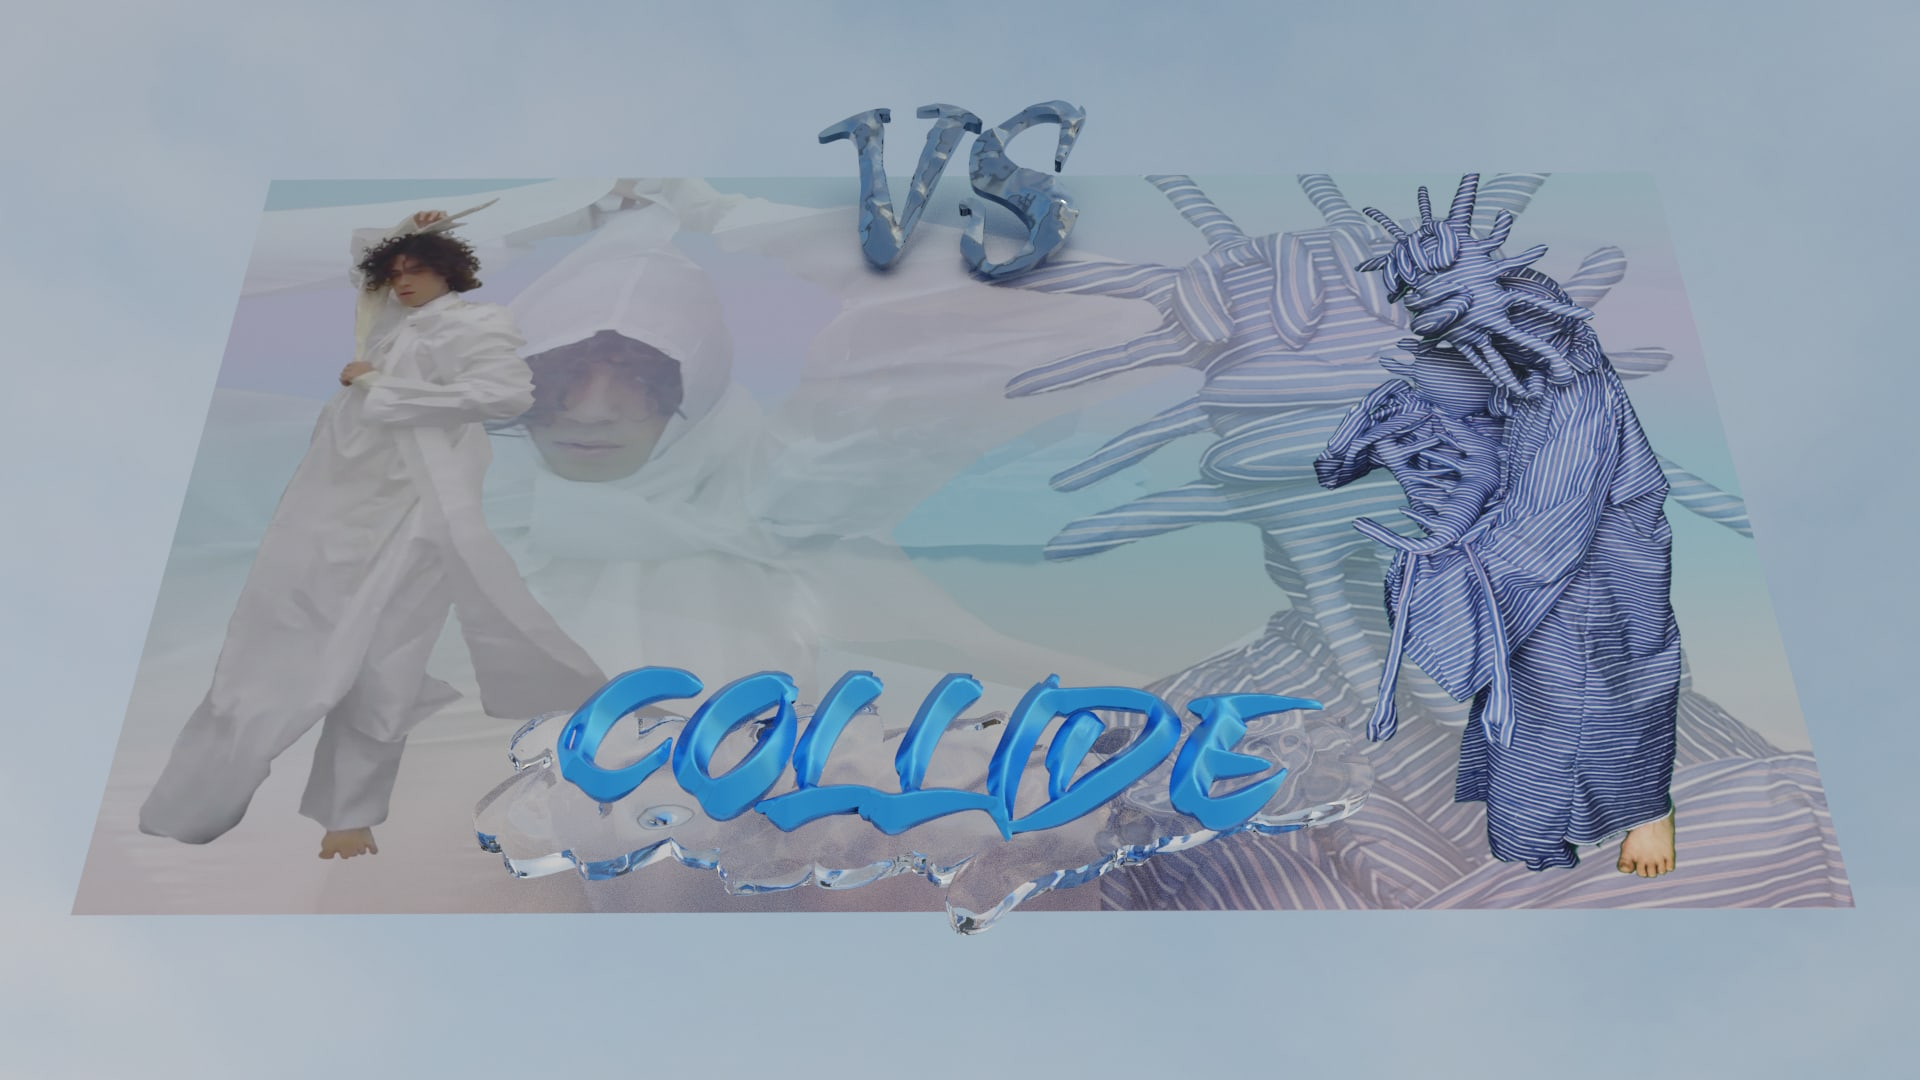 COLLIDE: OFFICIAL BATTLE POSTER